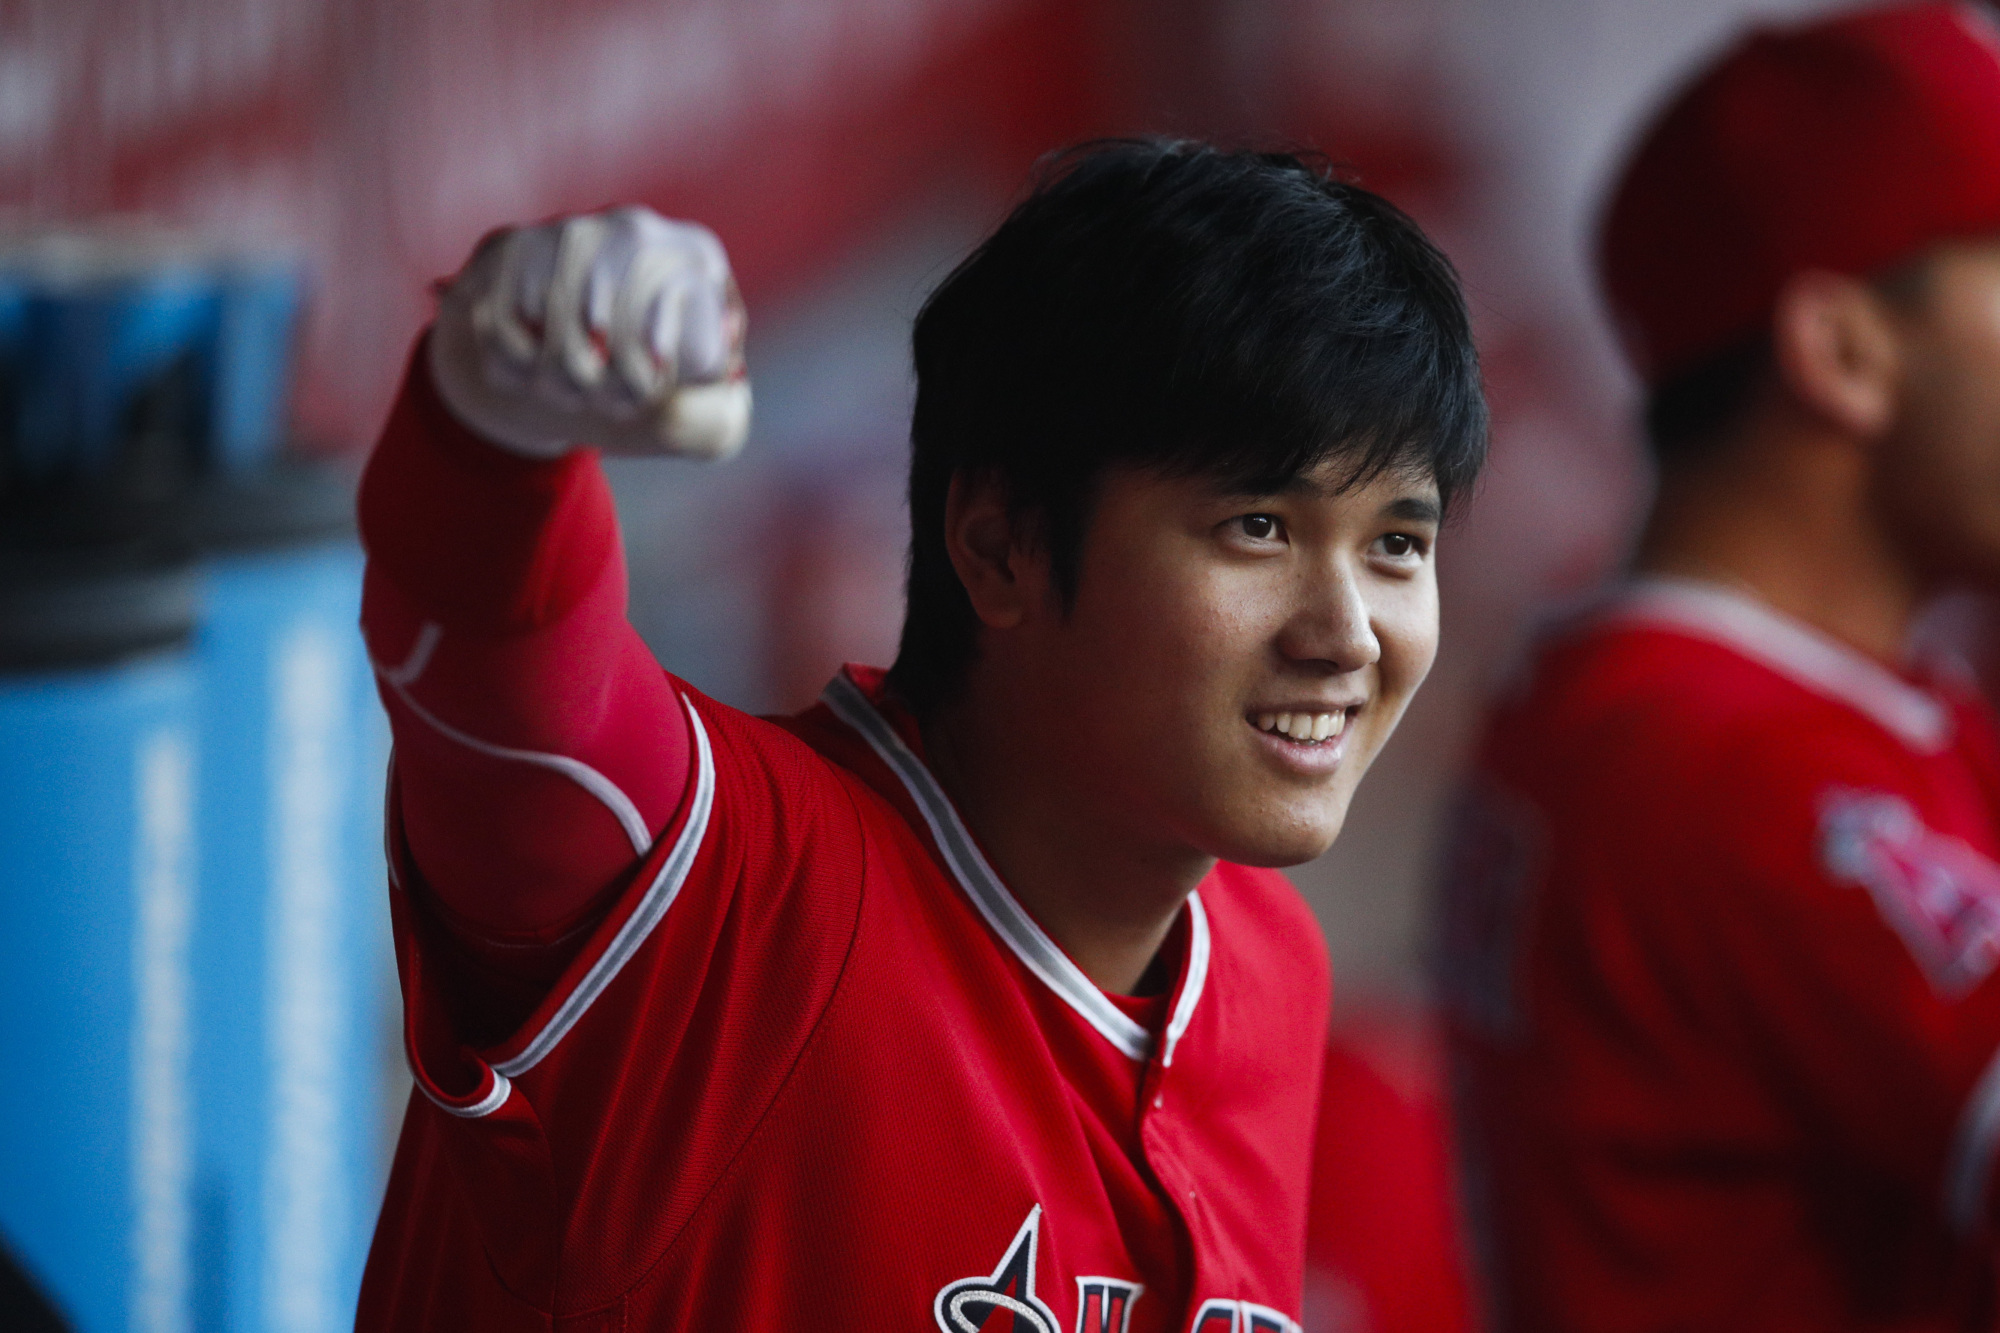 Shohei Ohtani gestures from the dugout during the first inning of the Angels' game against the Astros on Tuesday in Anaheim, California. | AP